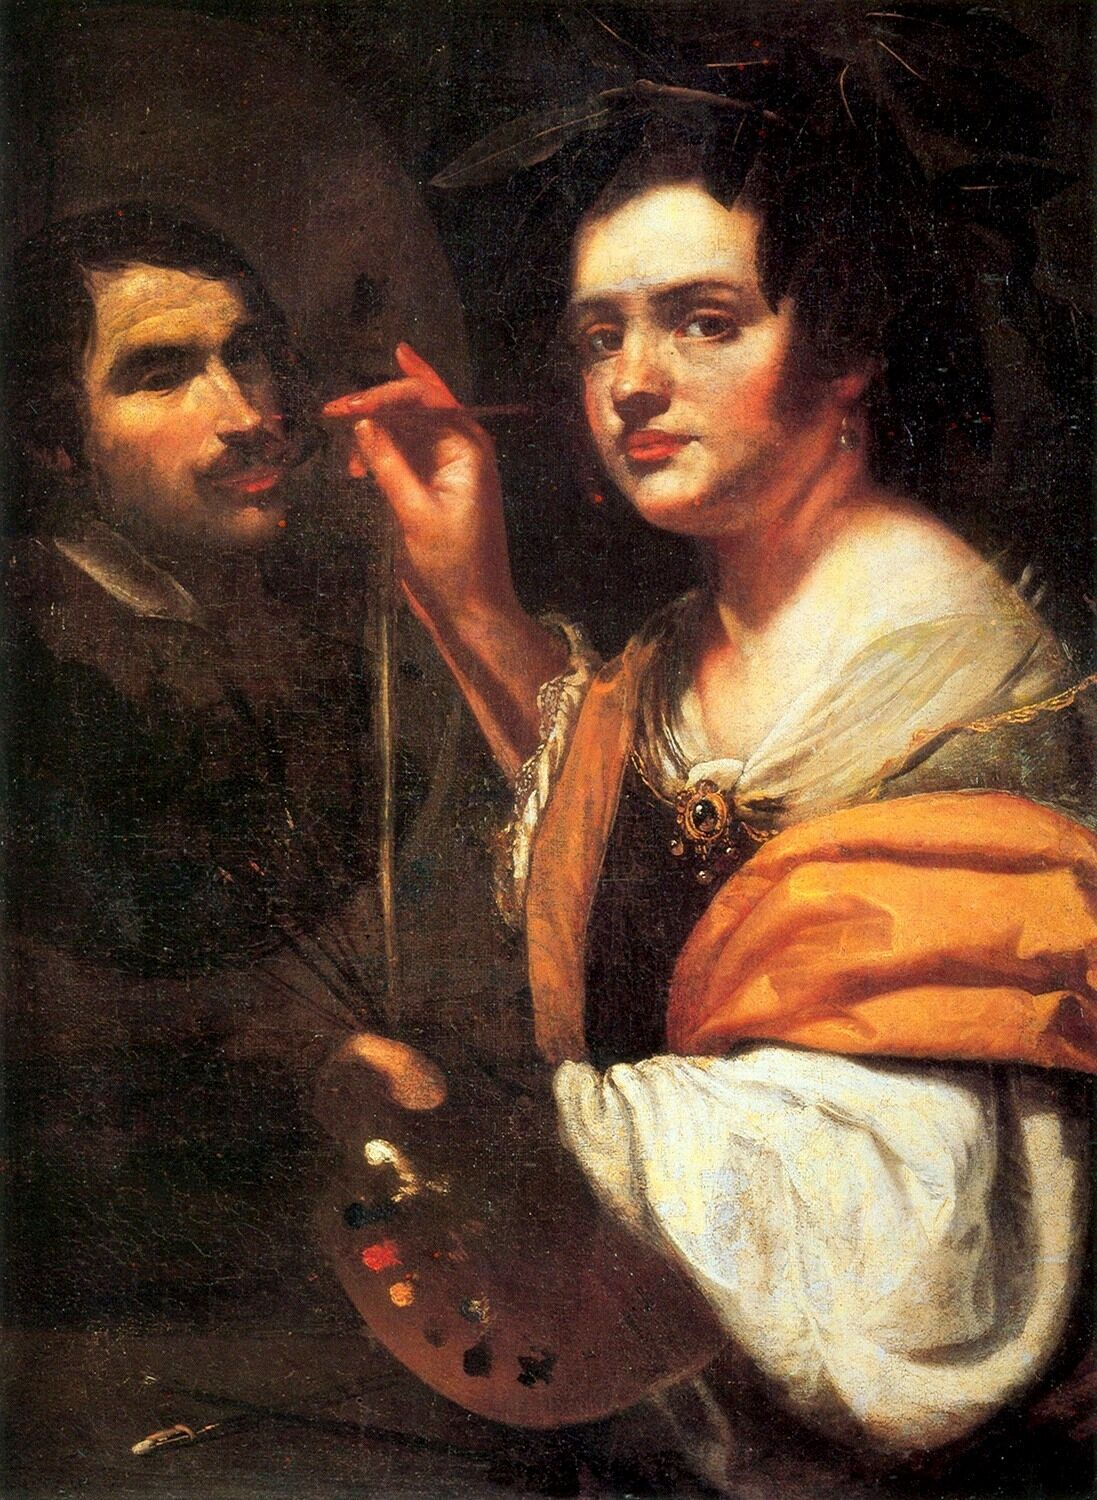 Artemisia Gentileschi, Self-portrait (Allegory of Painting), 1637. Photo via Wikimedia Commons.